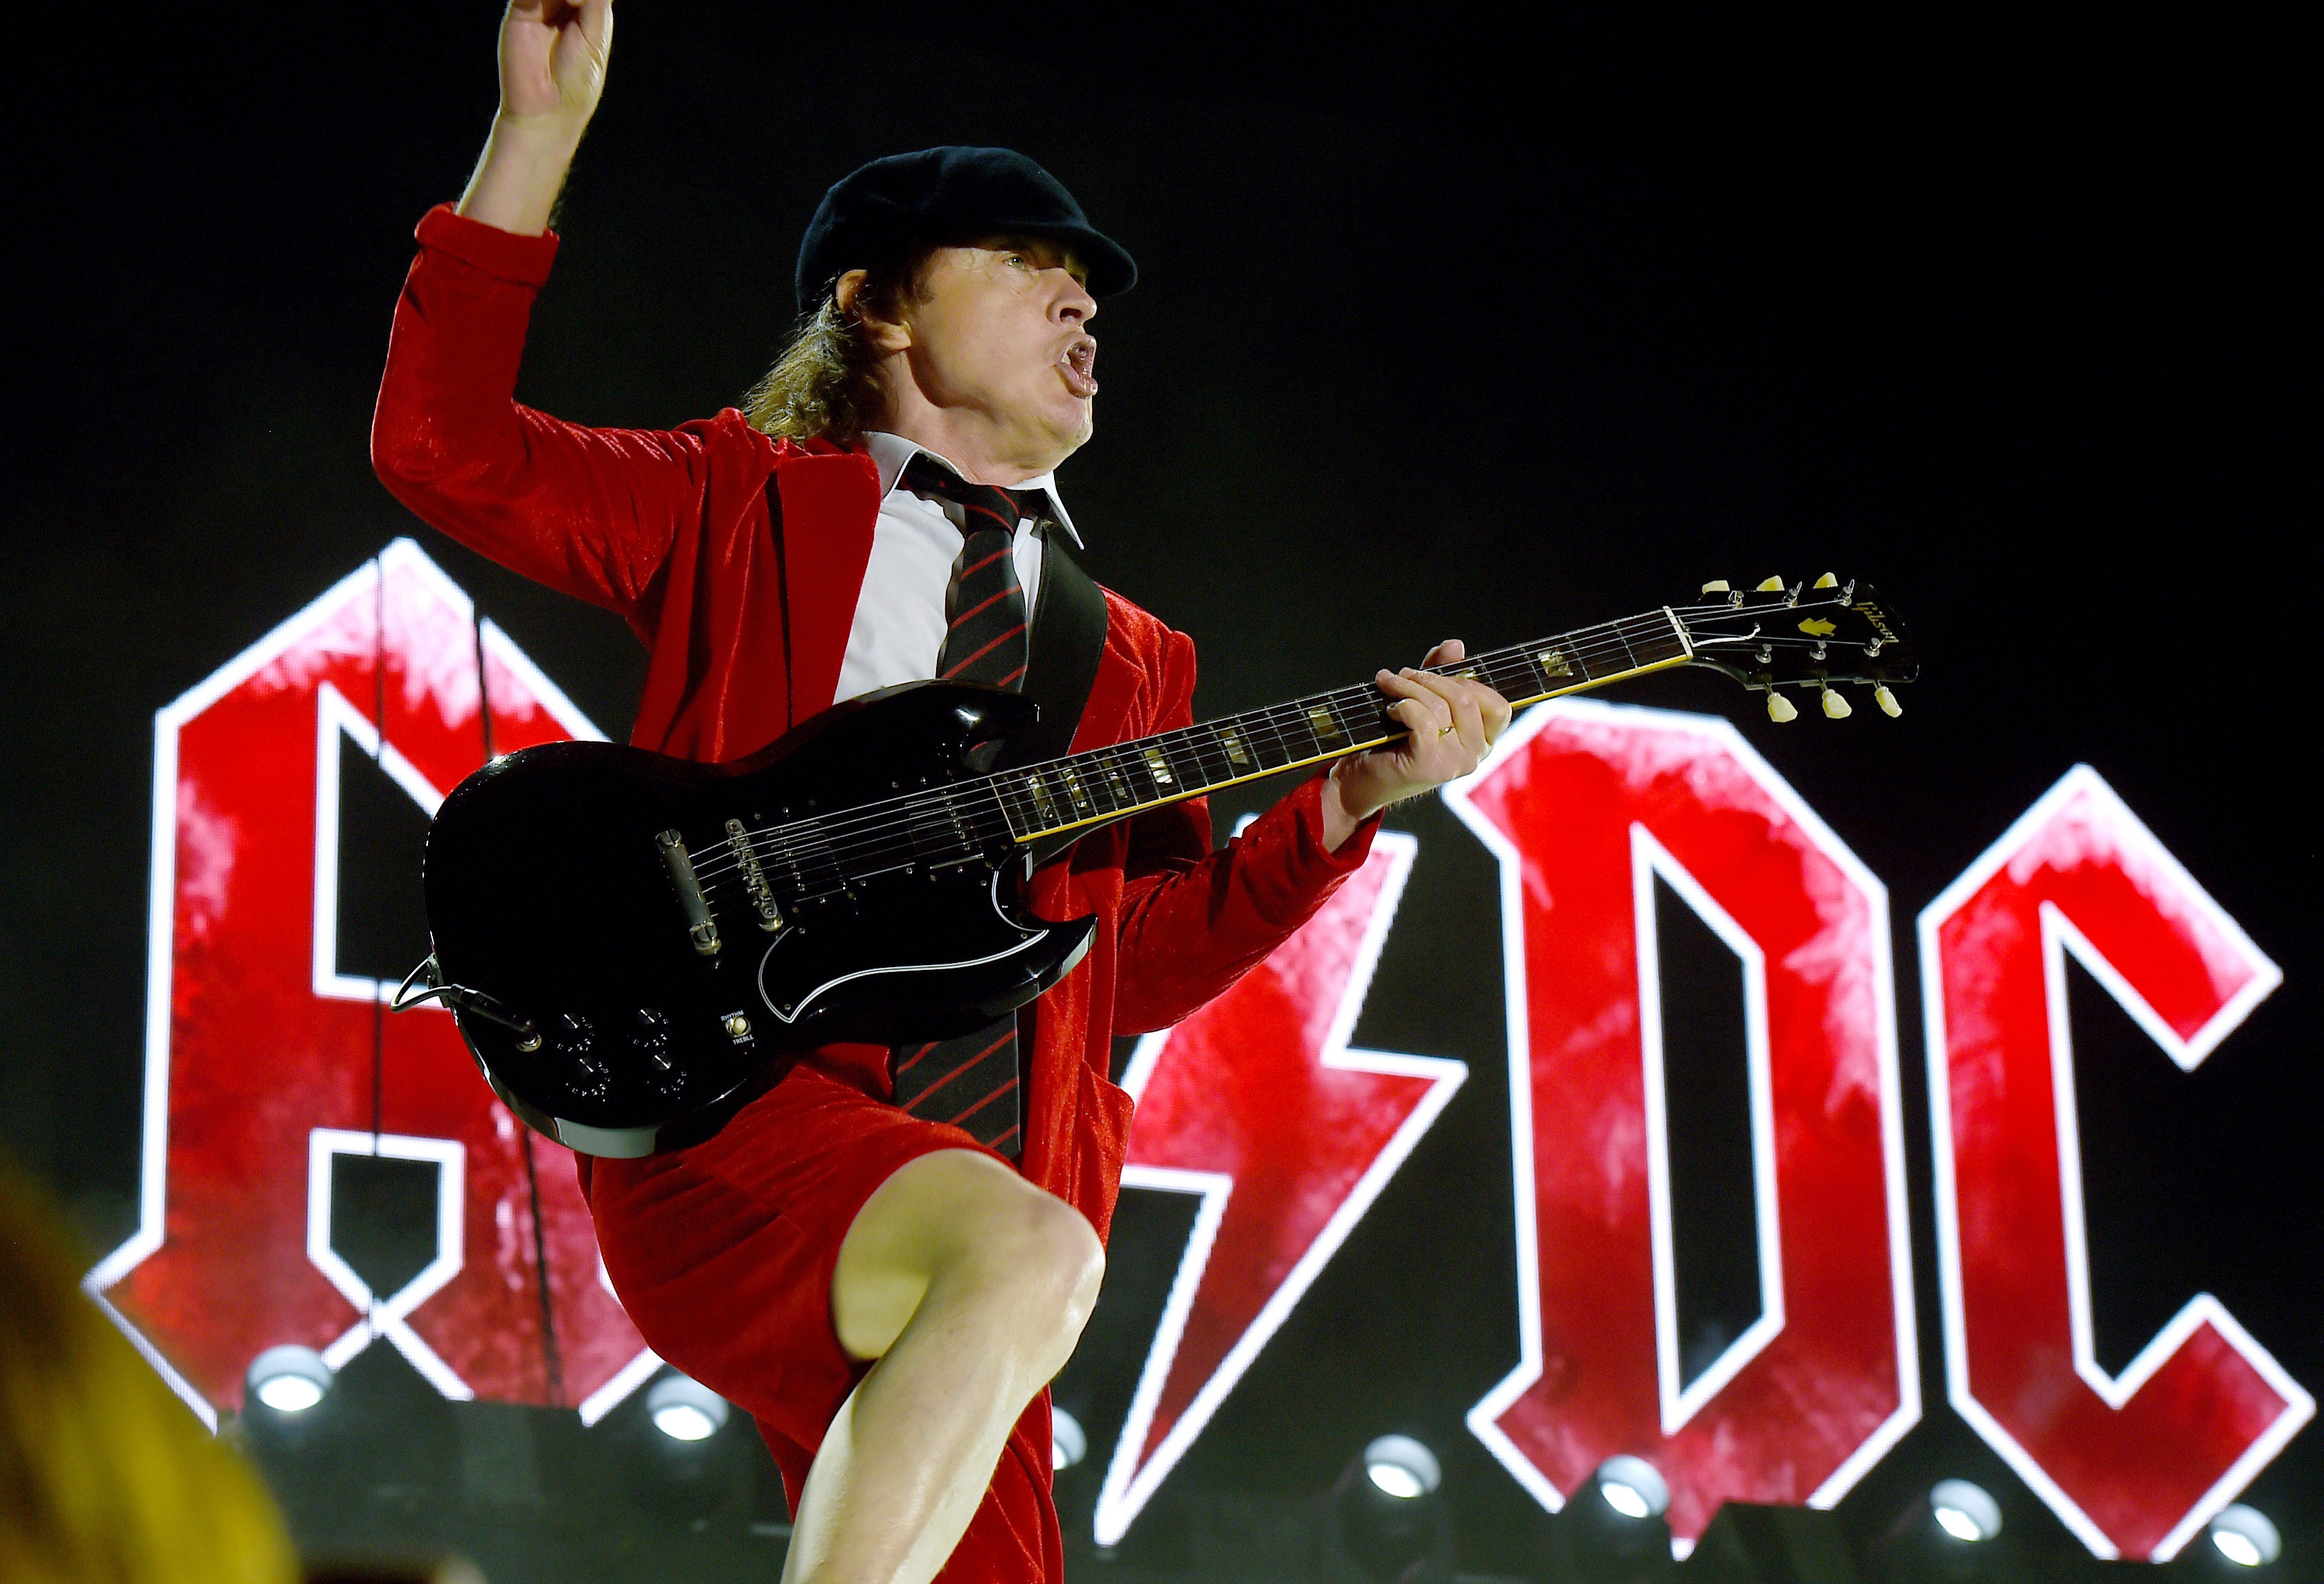 INDIO, CA - APRIL 10:  Musician Angus Young of AC/DC performs onstage during day 1 of the 2015 Coachella Valley Music & A